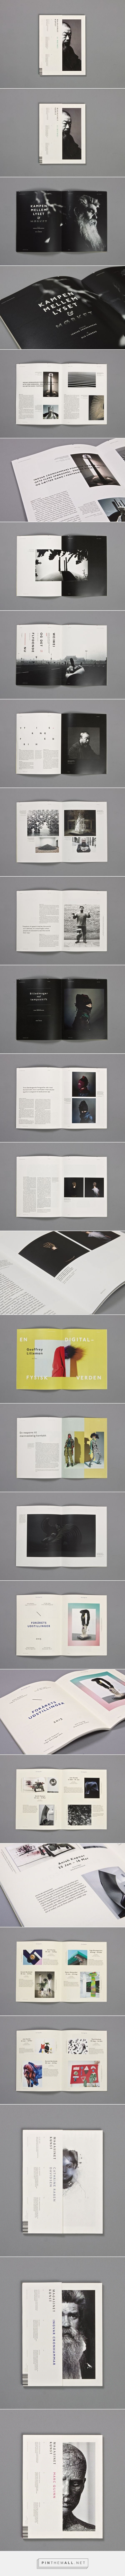 Magasinet Kunst on Behance by Henrik Ellersgaard https://www.behance.net/gallery/9398087/Magasinet-Kunst... - a grouped images picture - Pin Them All